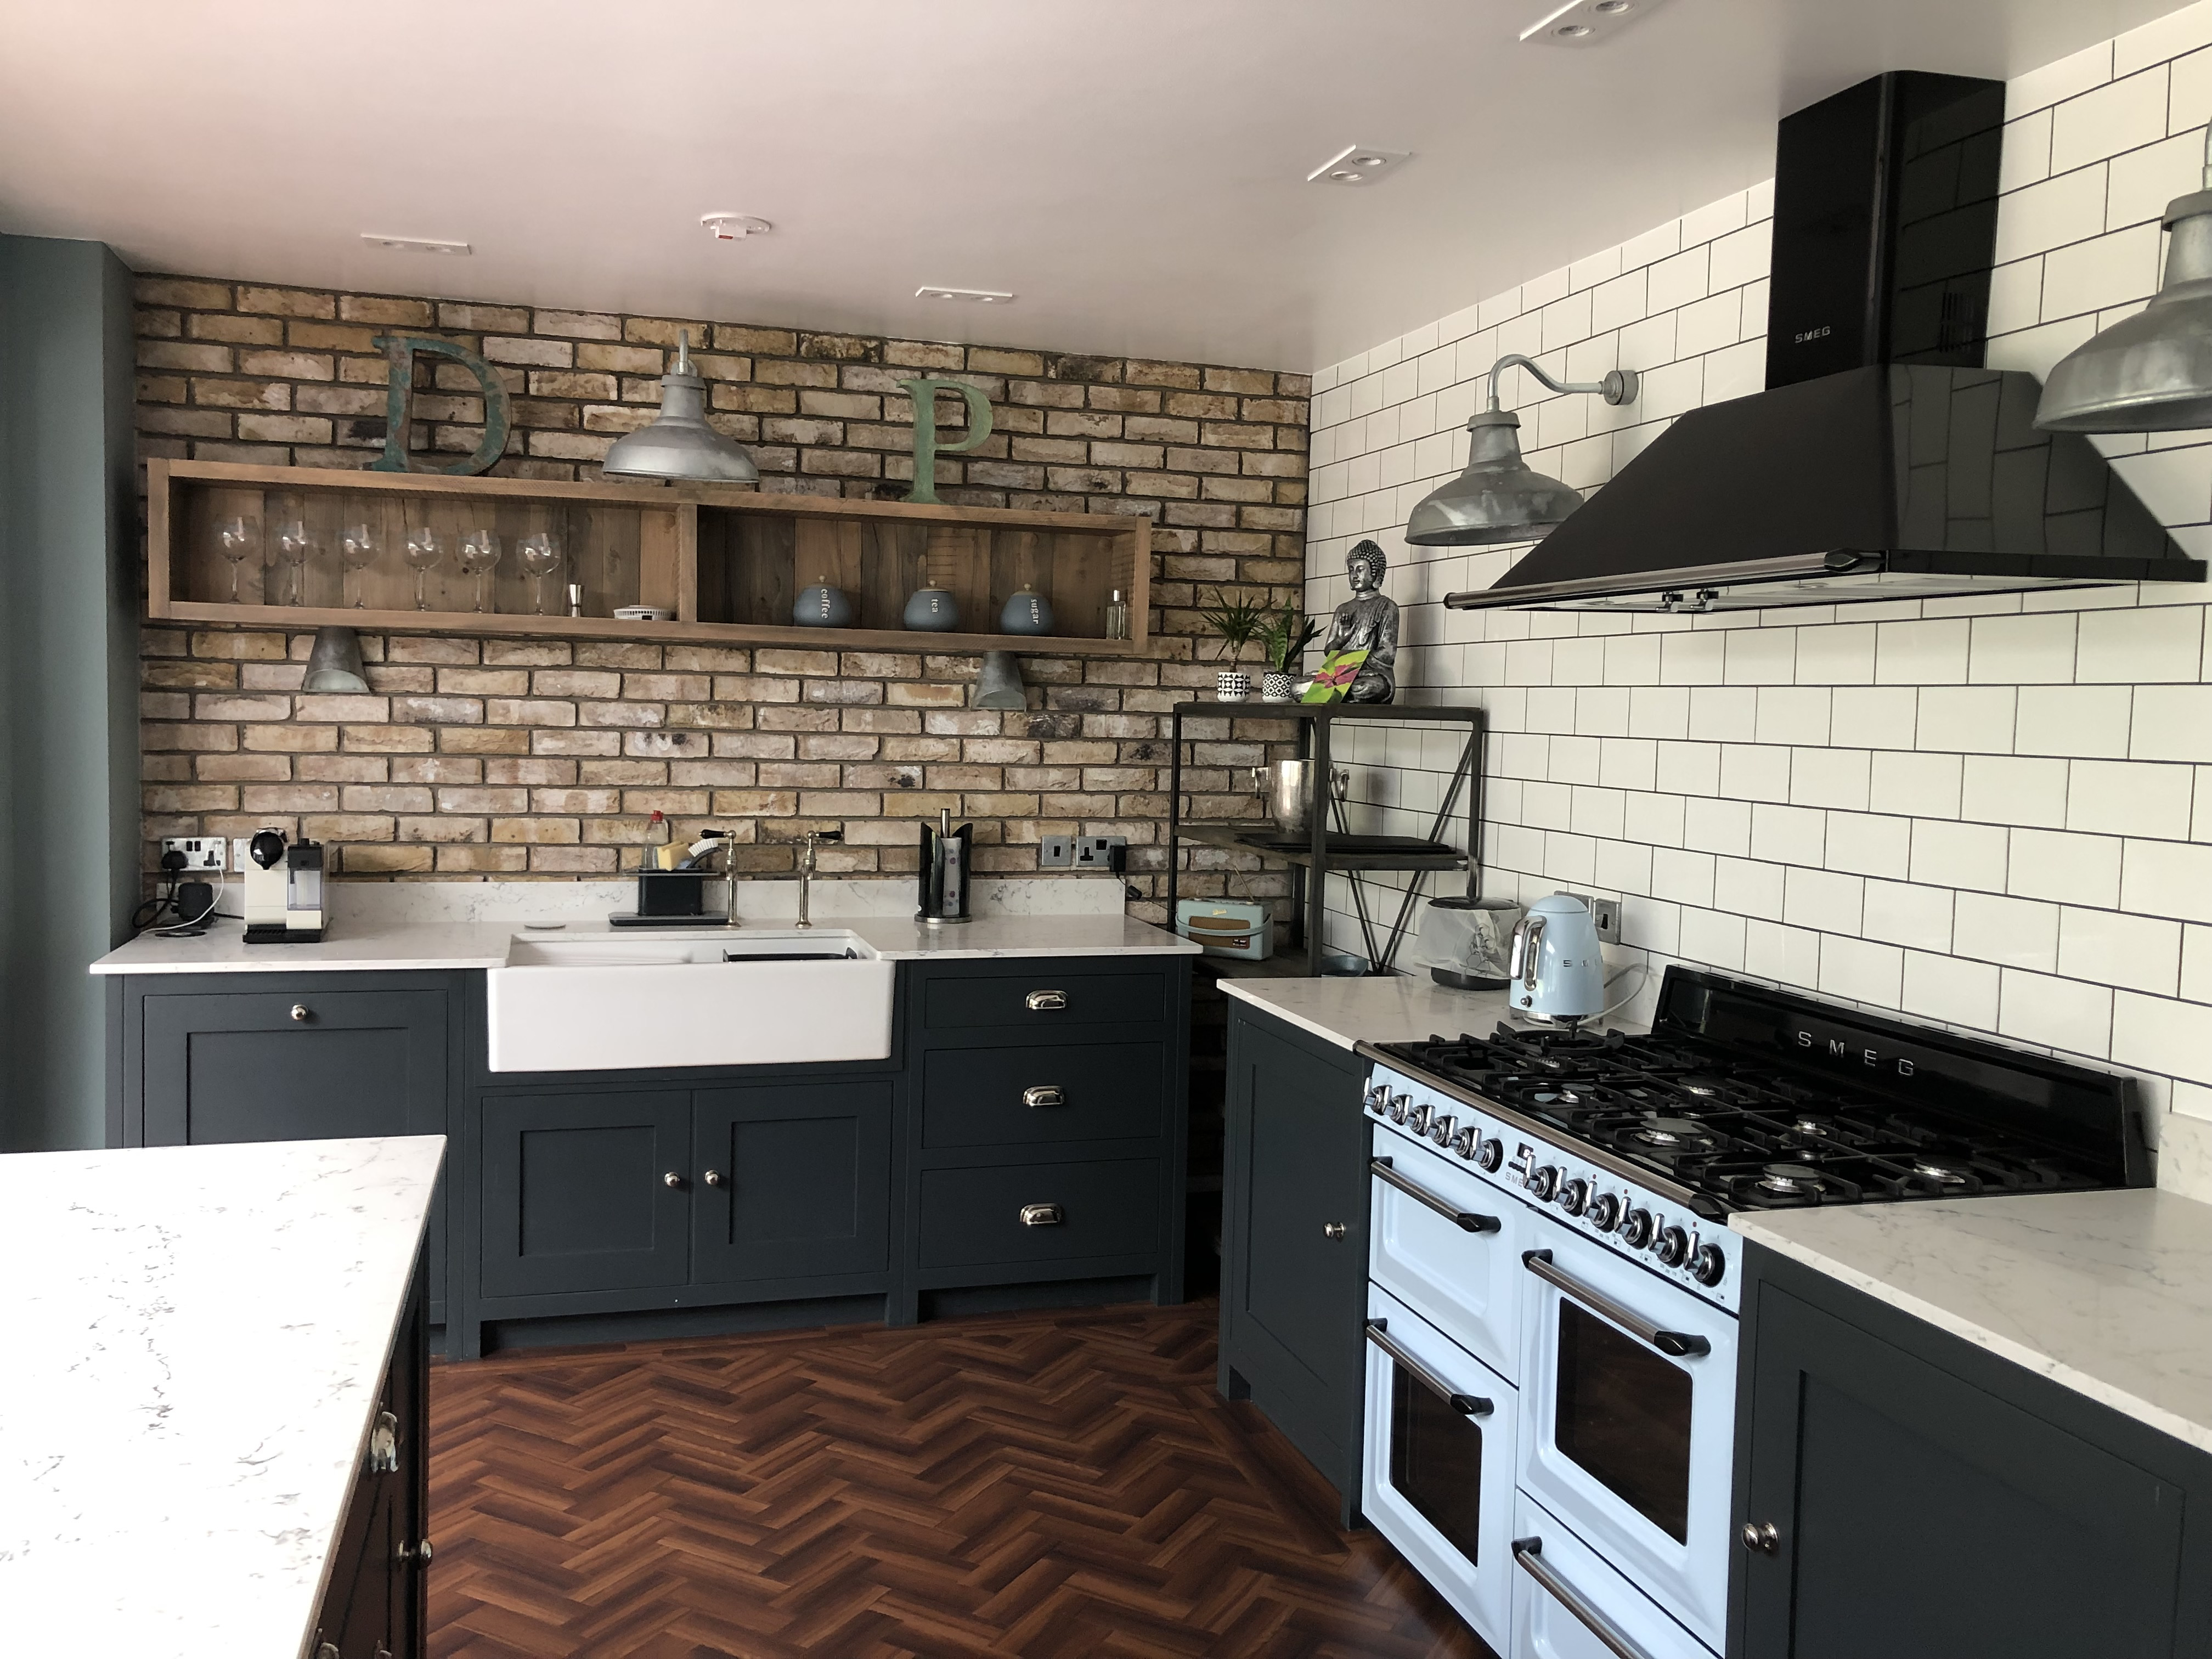 Bespoke kitchens from Experienced Carpenter St Albans